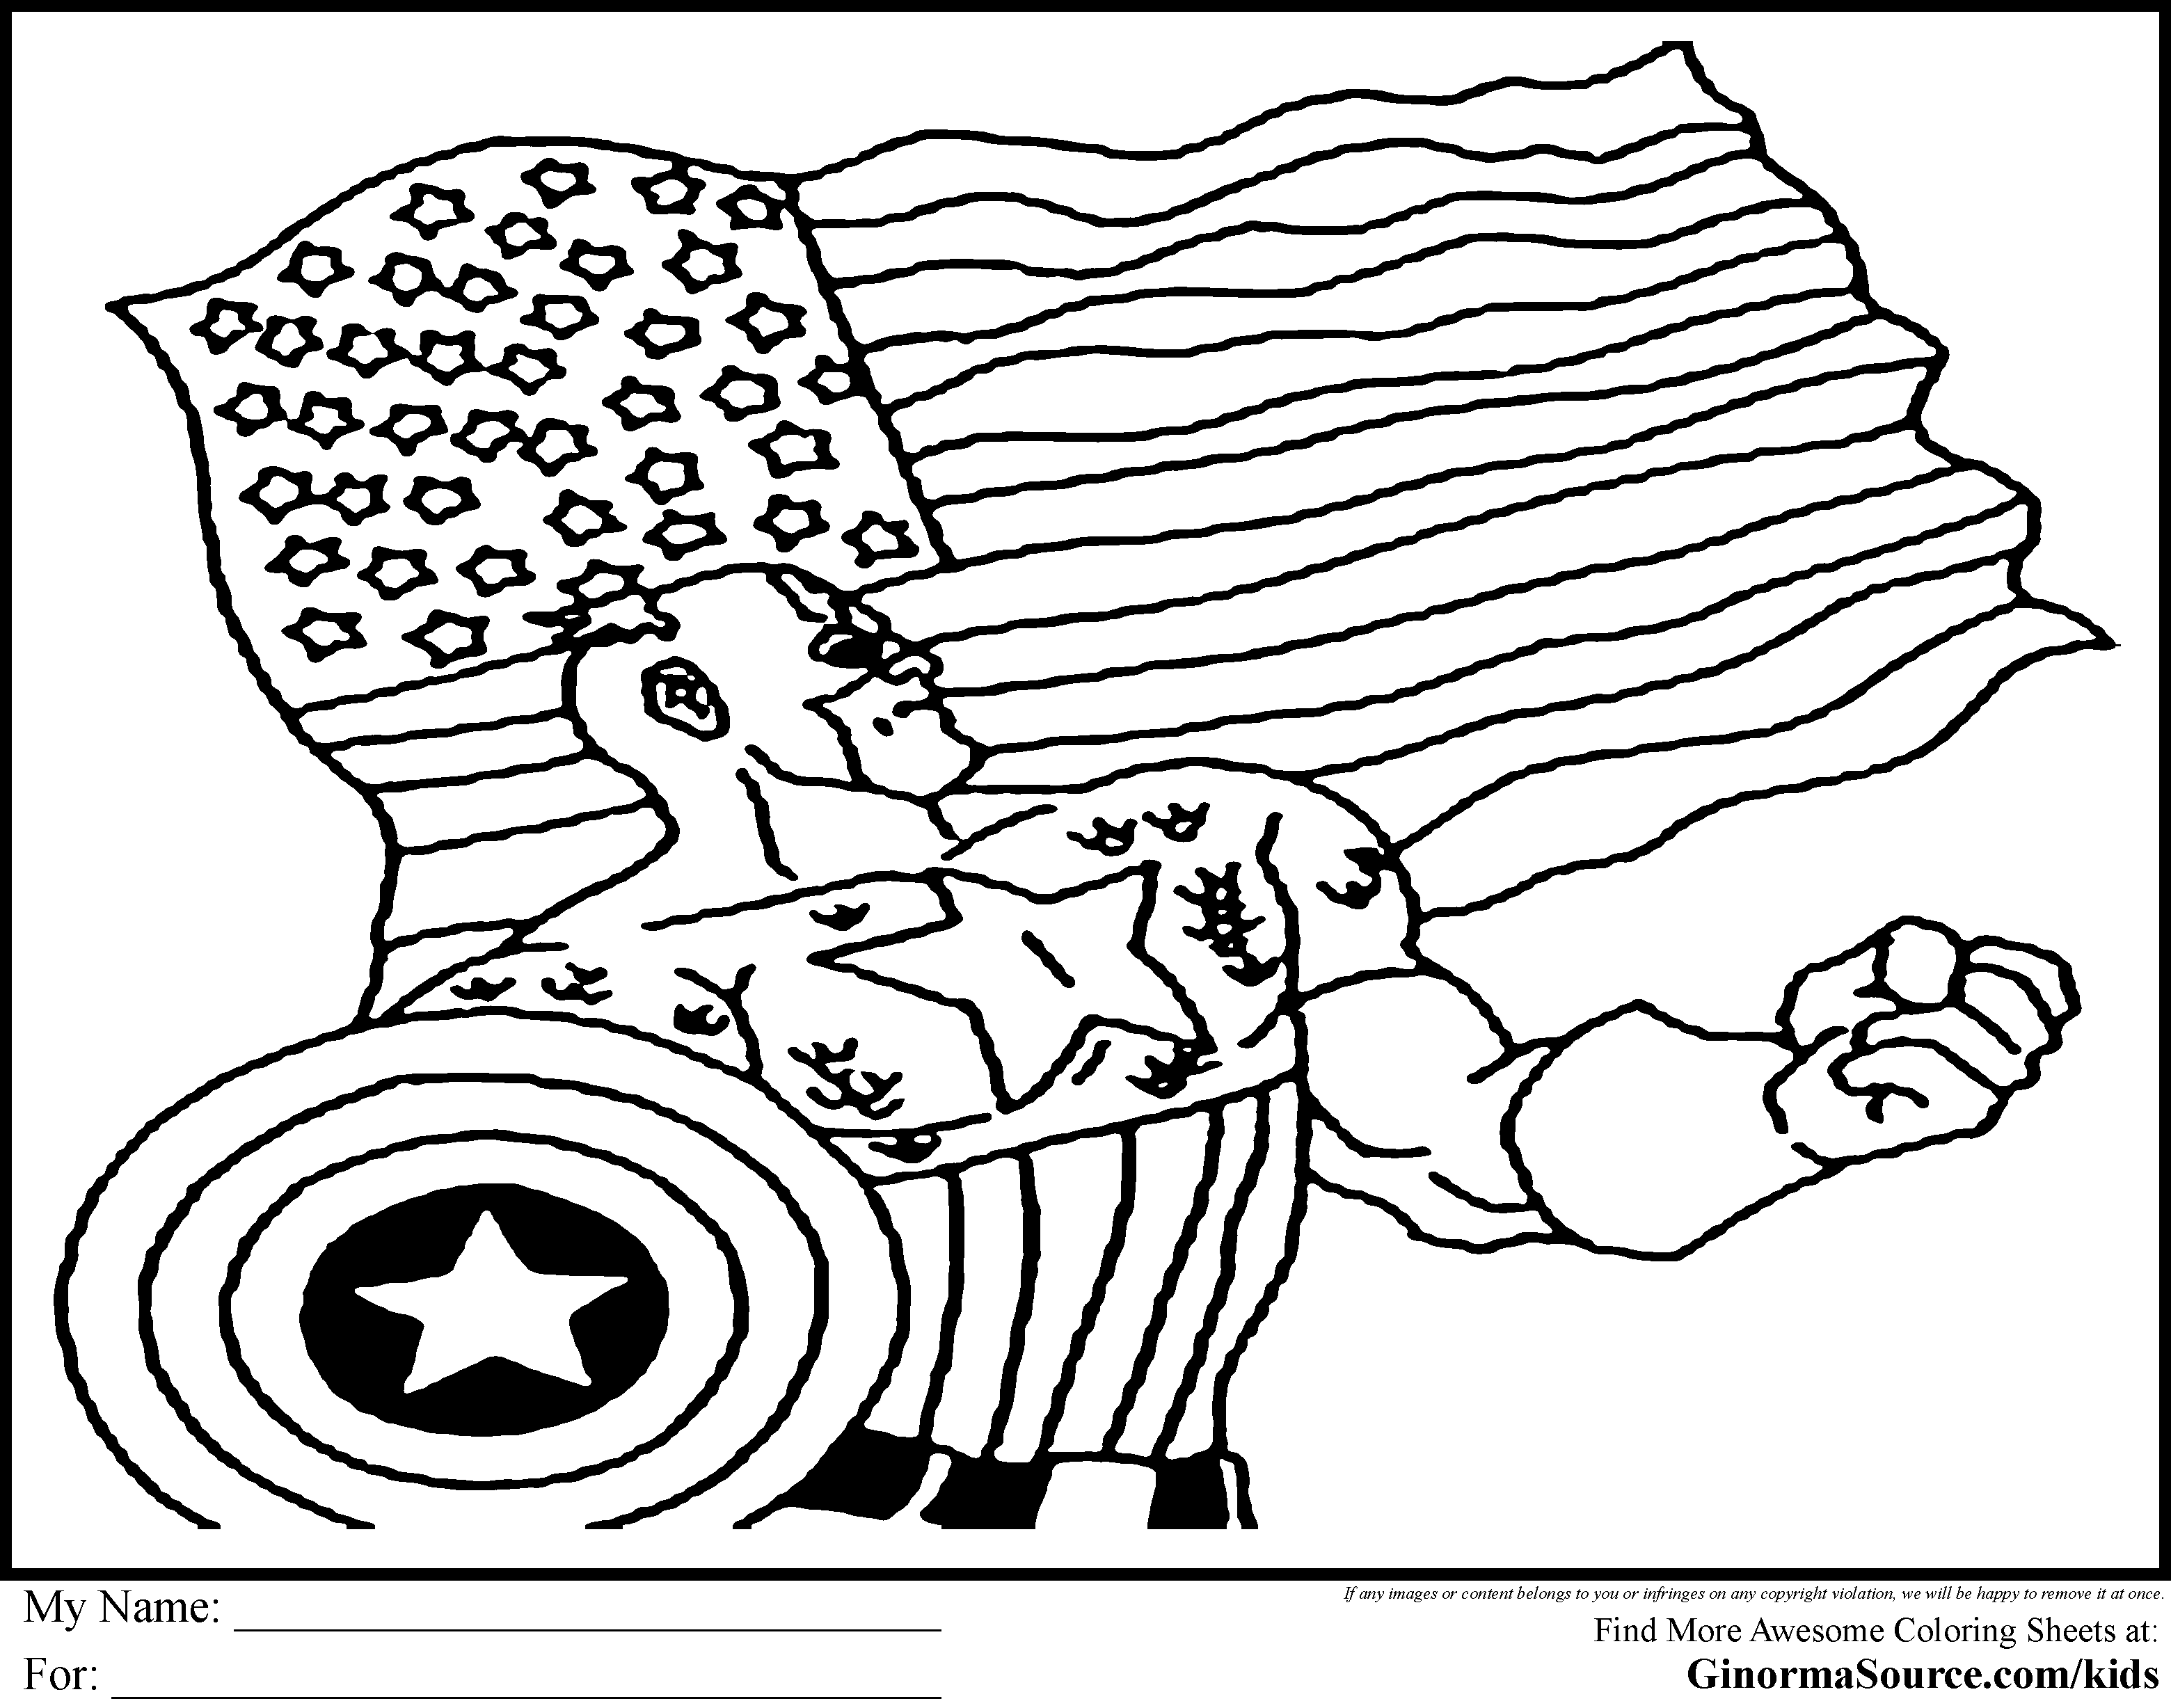 America Coloring Pages Captain America Coloring Pages 19 Pictures  Colorine .